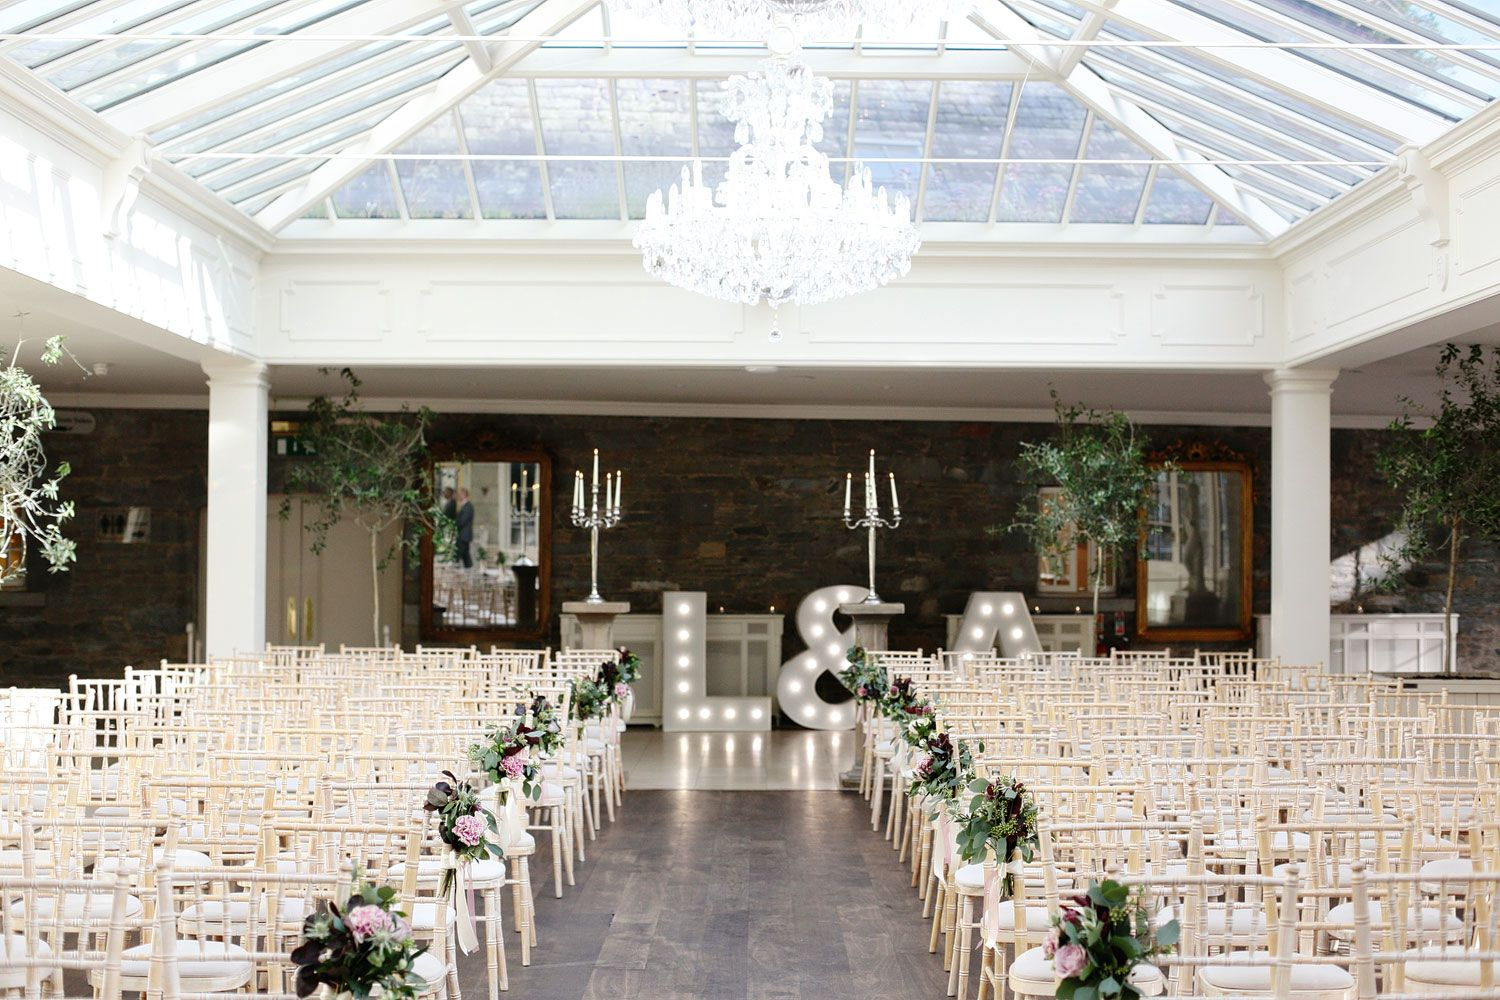 tankardstown house wedding venue the orangery photo set up for a civil ceremony on site